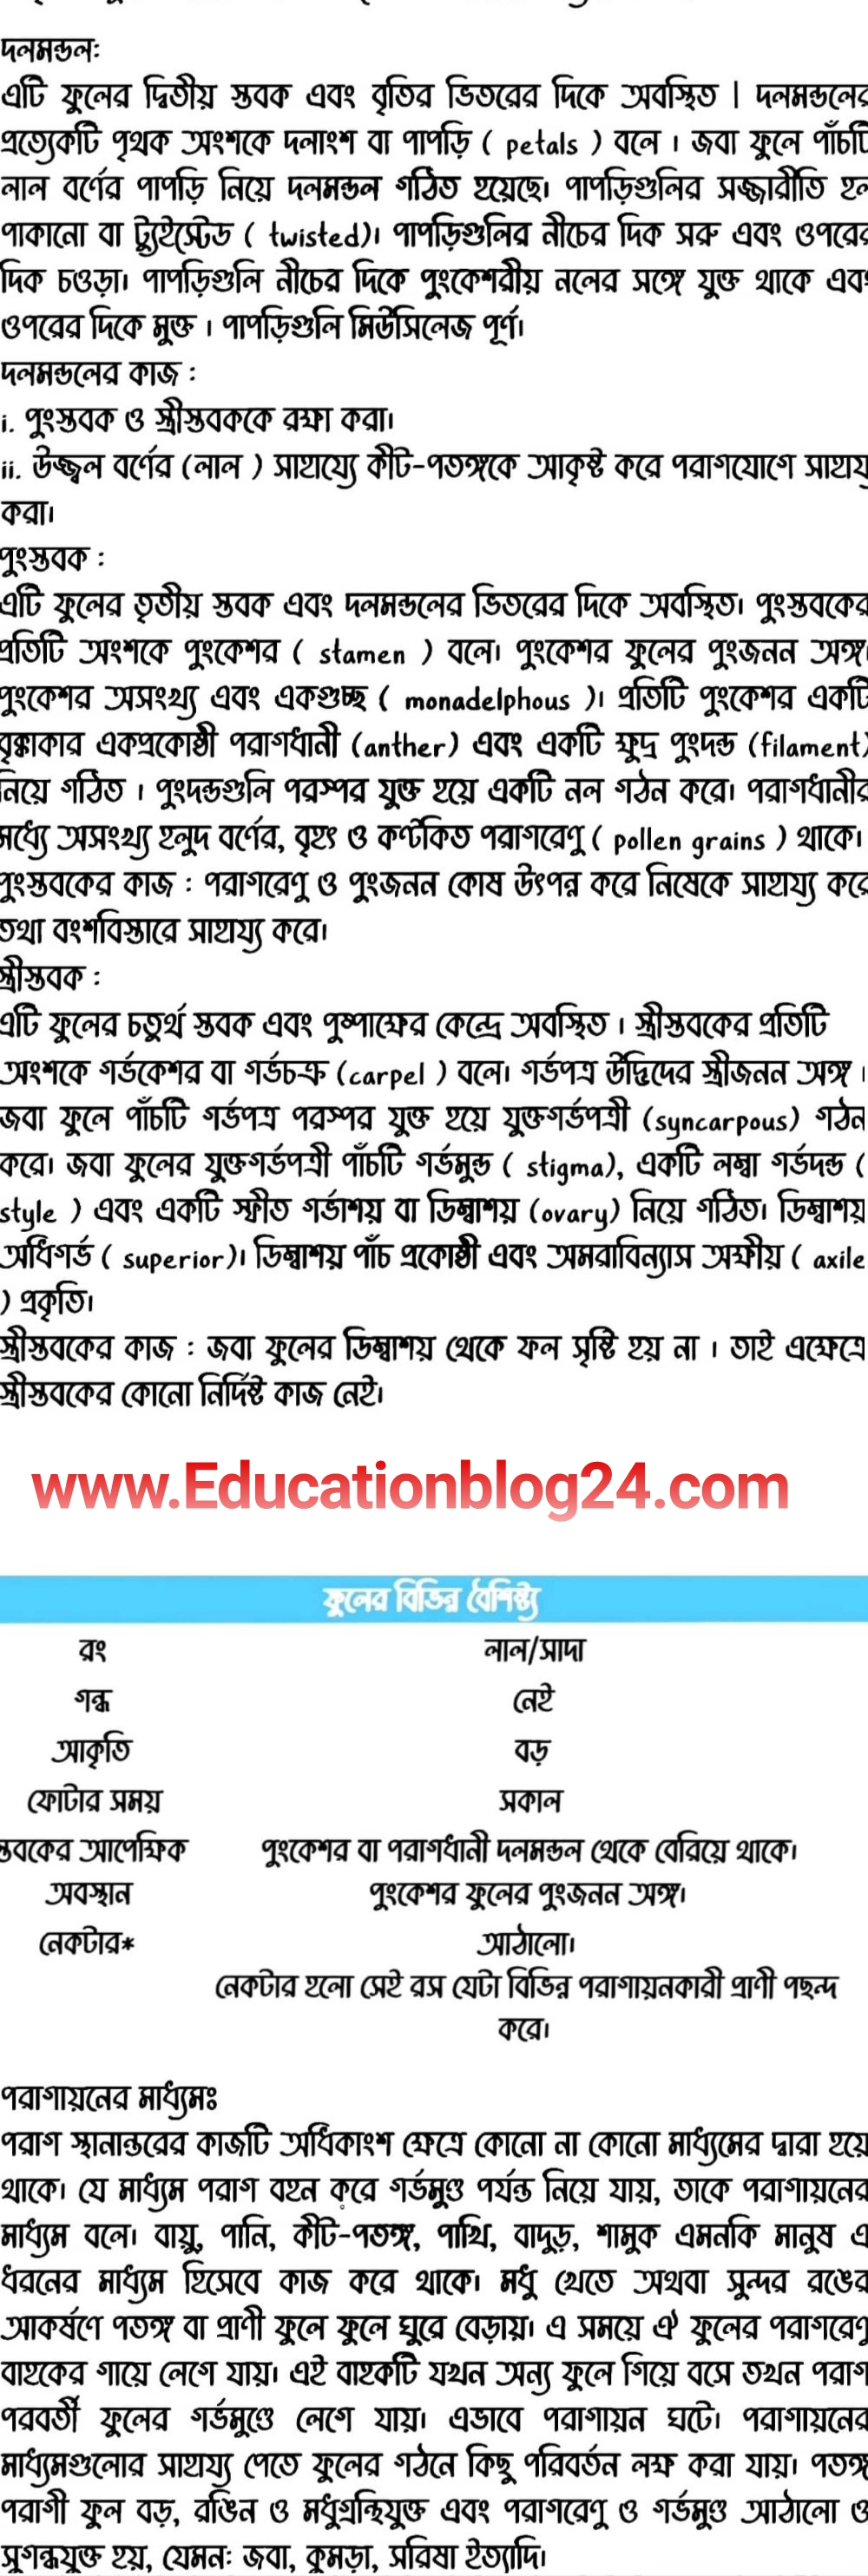 SSC Biology Assignment Answer 2021 pdf download English version 3